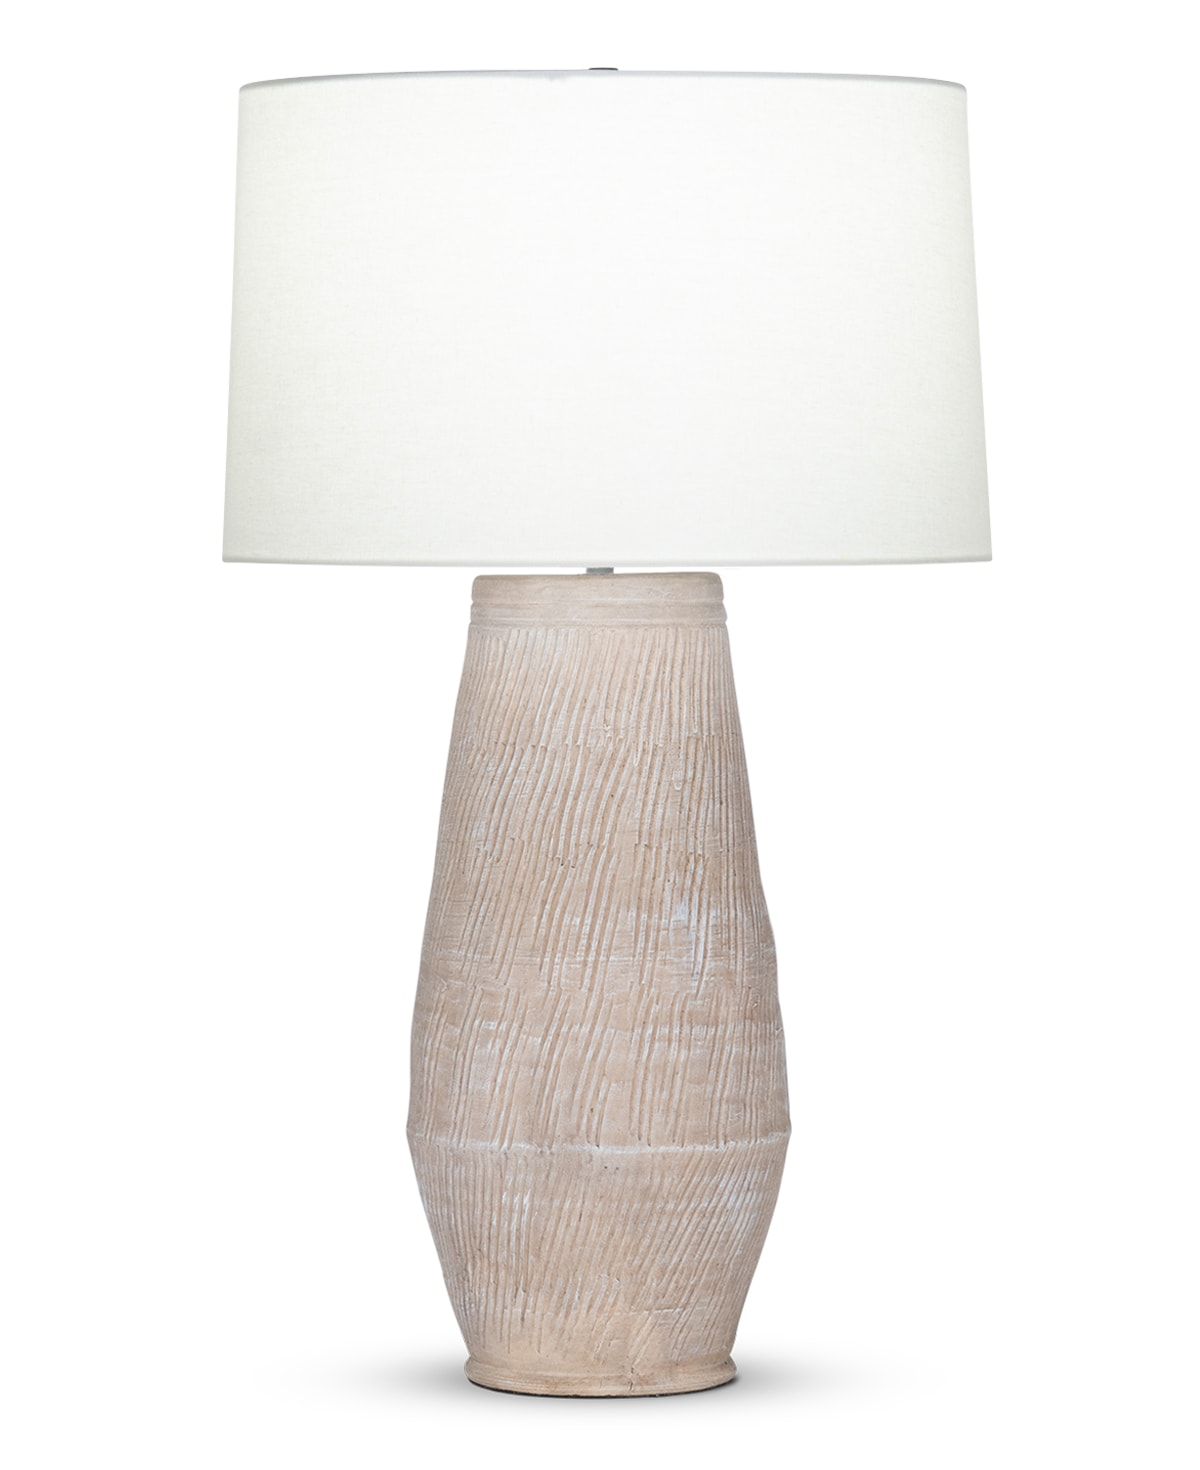 FlowDecor Adrian Table Lamp in ceramic with sand finish and off-white linen tapered drum shade (# 4500)